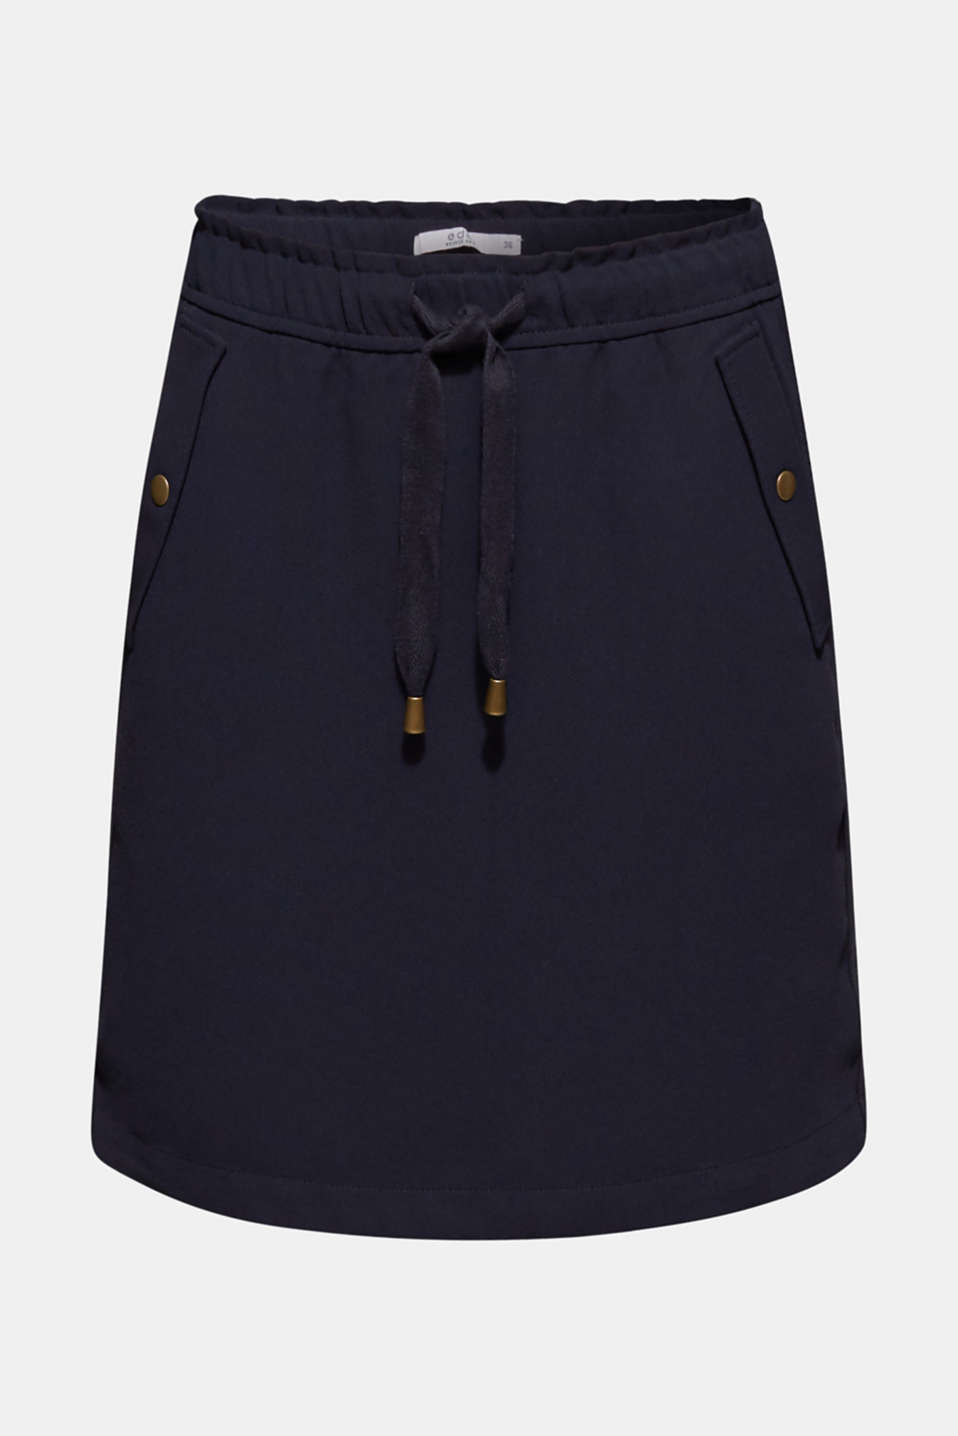 Crêpe skirt with a drawstring waistband, NAVY, detail image number 7